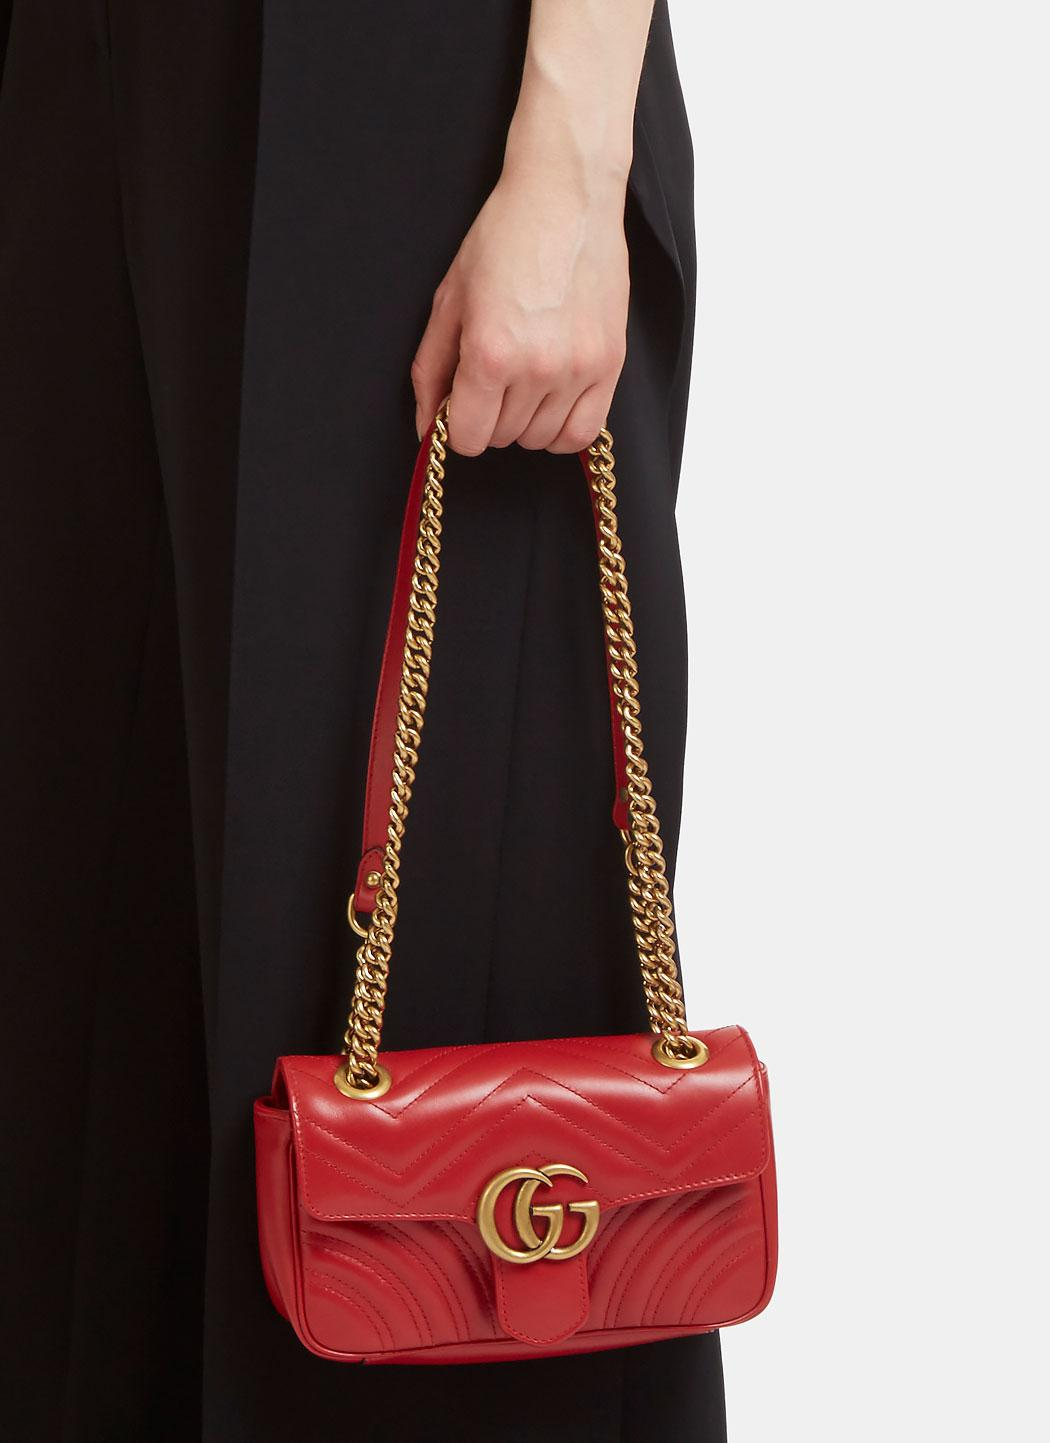 0d8f6ecd3c6 Lyst - Gucci Gg Marmont Matelassé Mini Chain Shoulder Bag In Red in Red